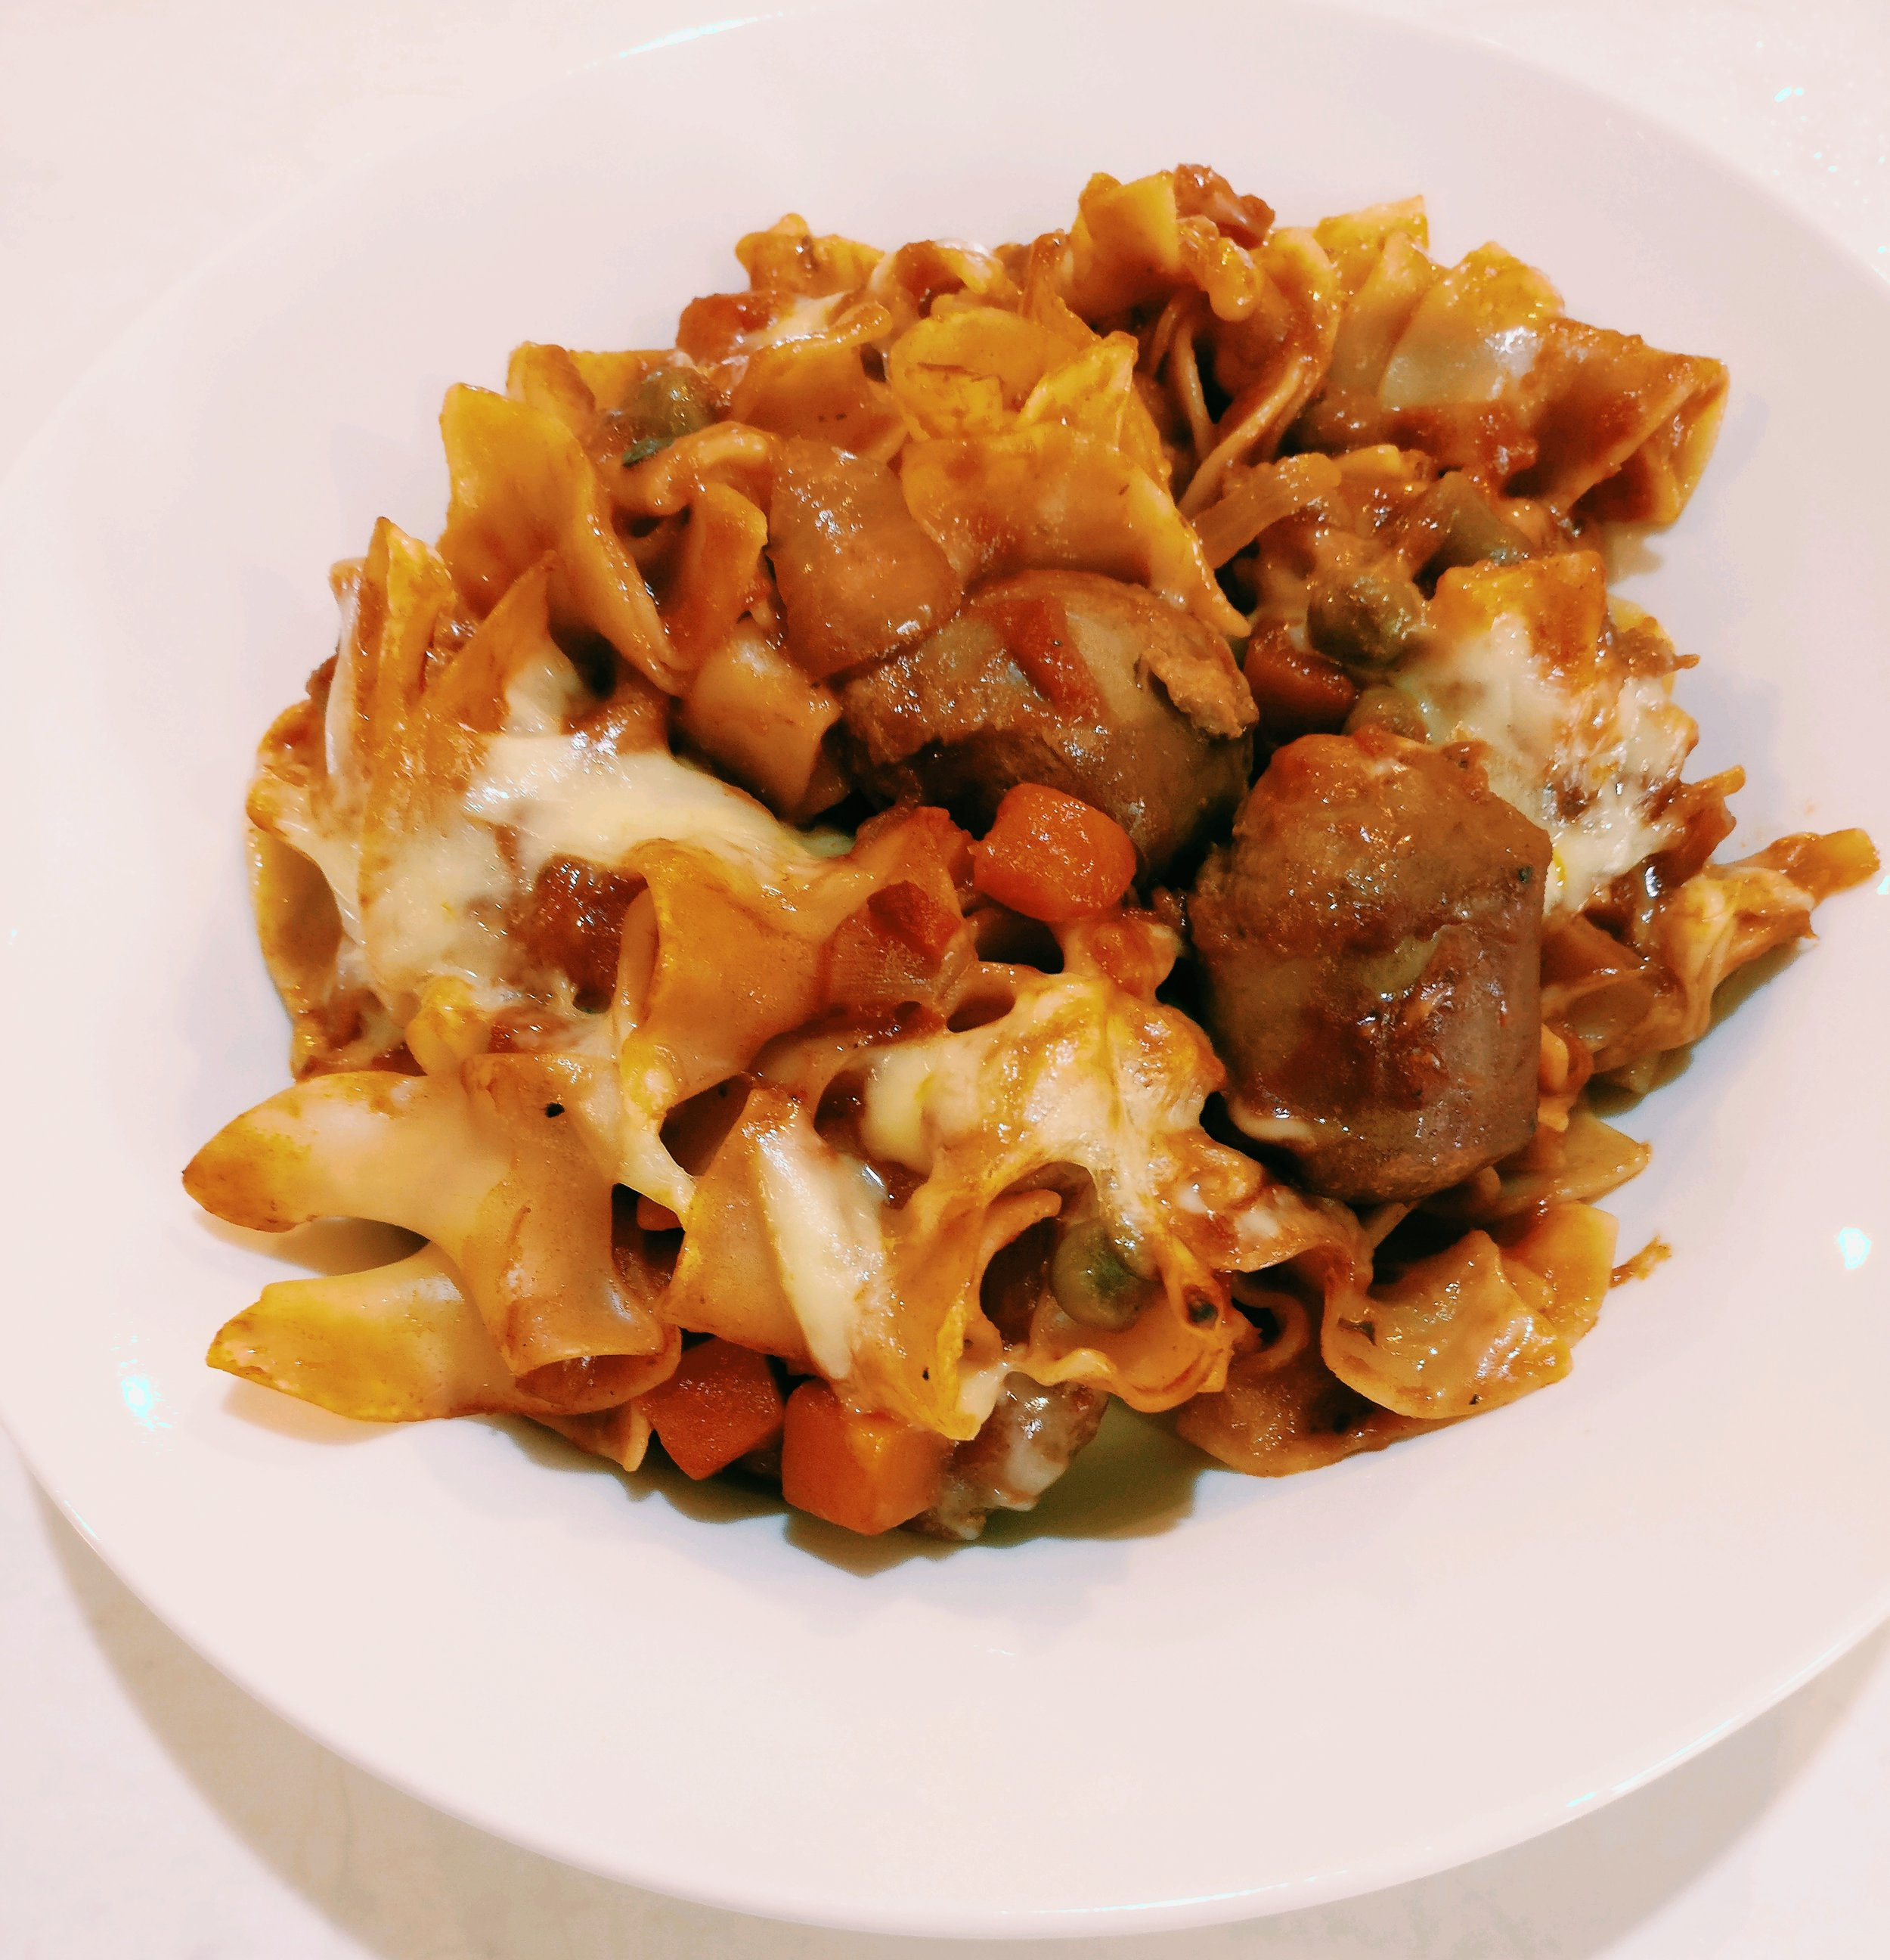 Sausage Pasta Bake - Ingredients3 Sausages - Chopped into quarters1/2 Onion - Diced1C Frozen Veges1/2 Can Tomatoes1 Can Pasta Sauce150g PastaGrated CheeseMethod1. Brown the Sausages and Onion in a frying pan2. Add the frozen veges, tomatoes and pasta sauce to the frying pan and cook through for 5 mins3. Cook the pasta according to packet diretions4. Combine the cooked pasta and sausage mixture and pour into an oven proof dish5. Top with a small amount of grated cheese6. Bake in the oven at 180 until browned on the top